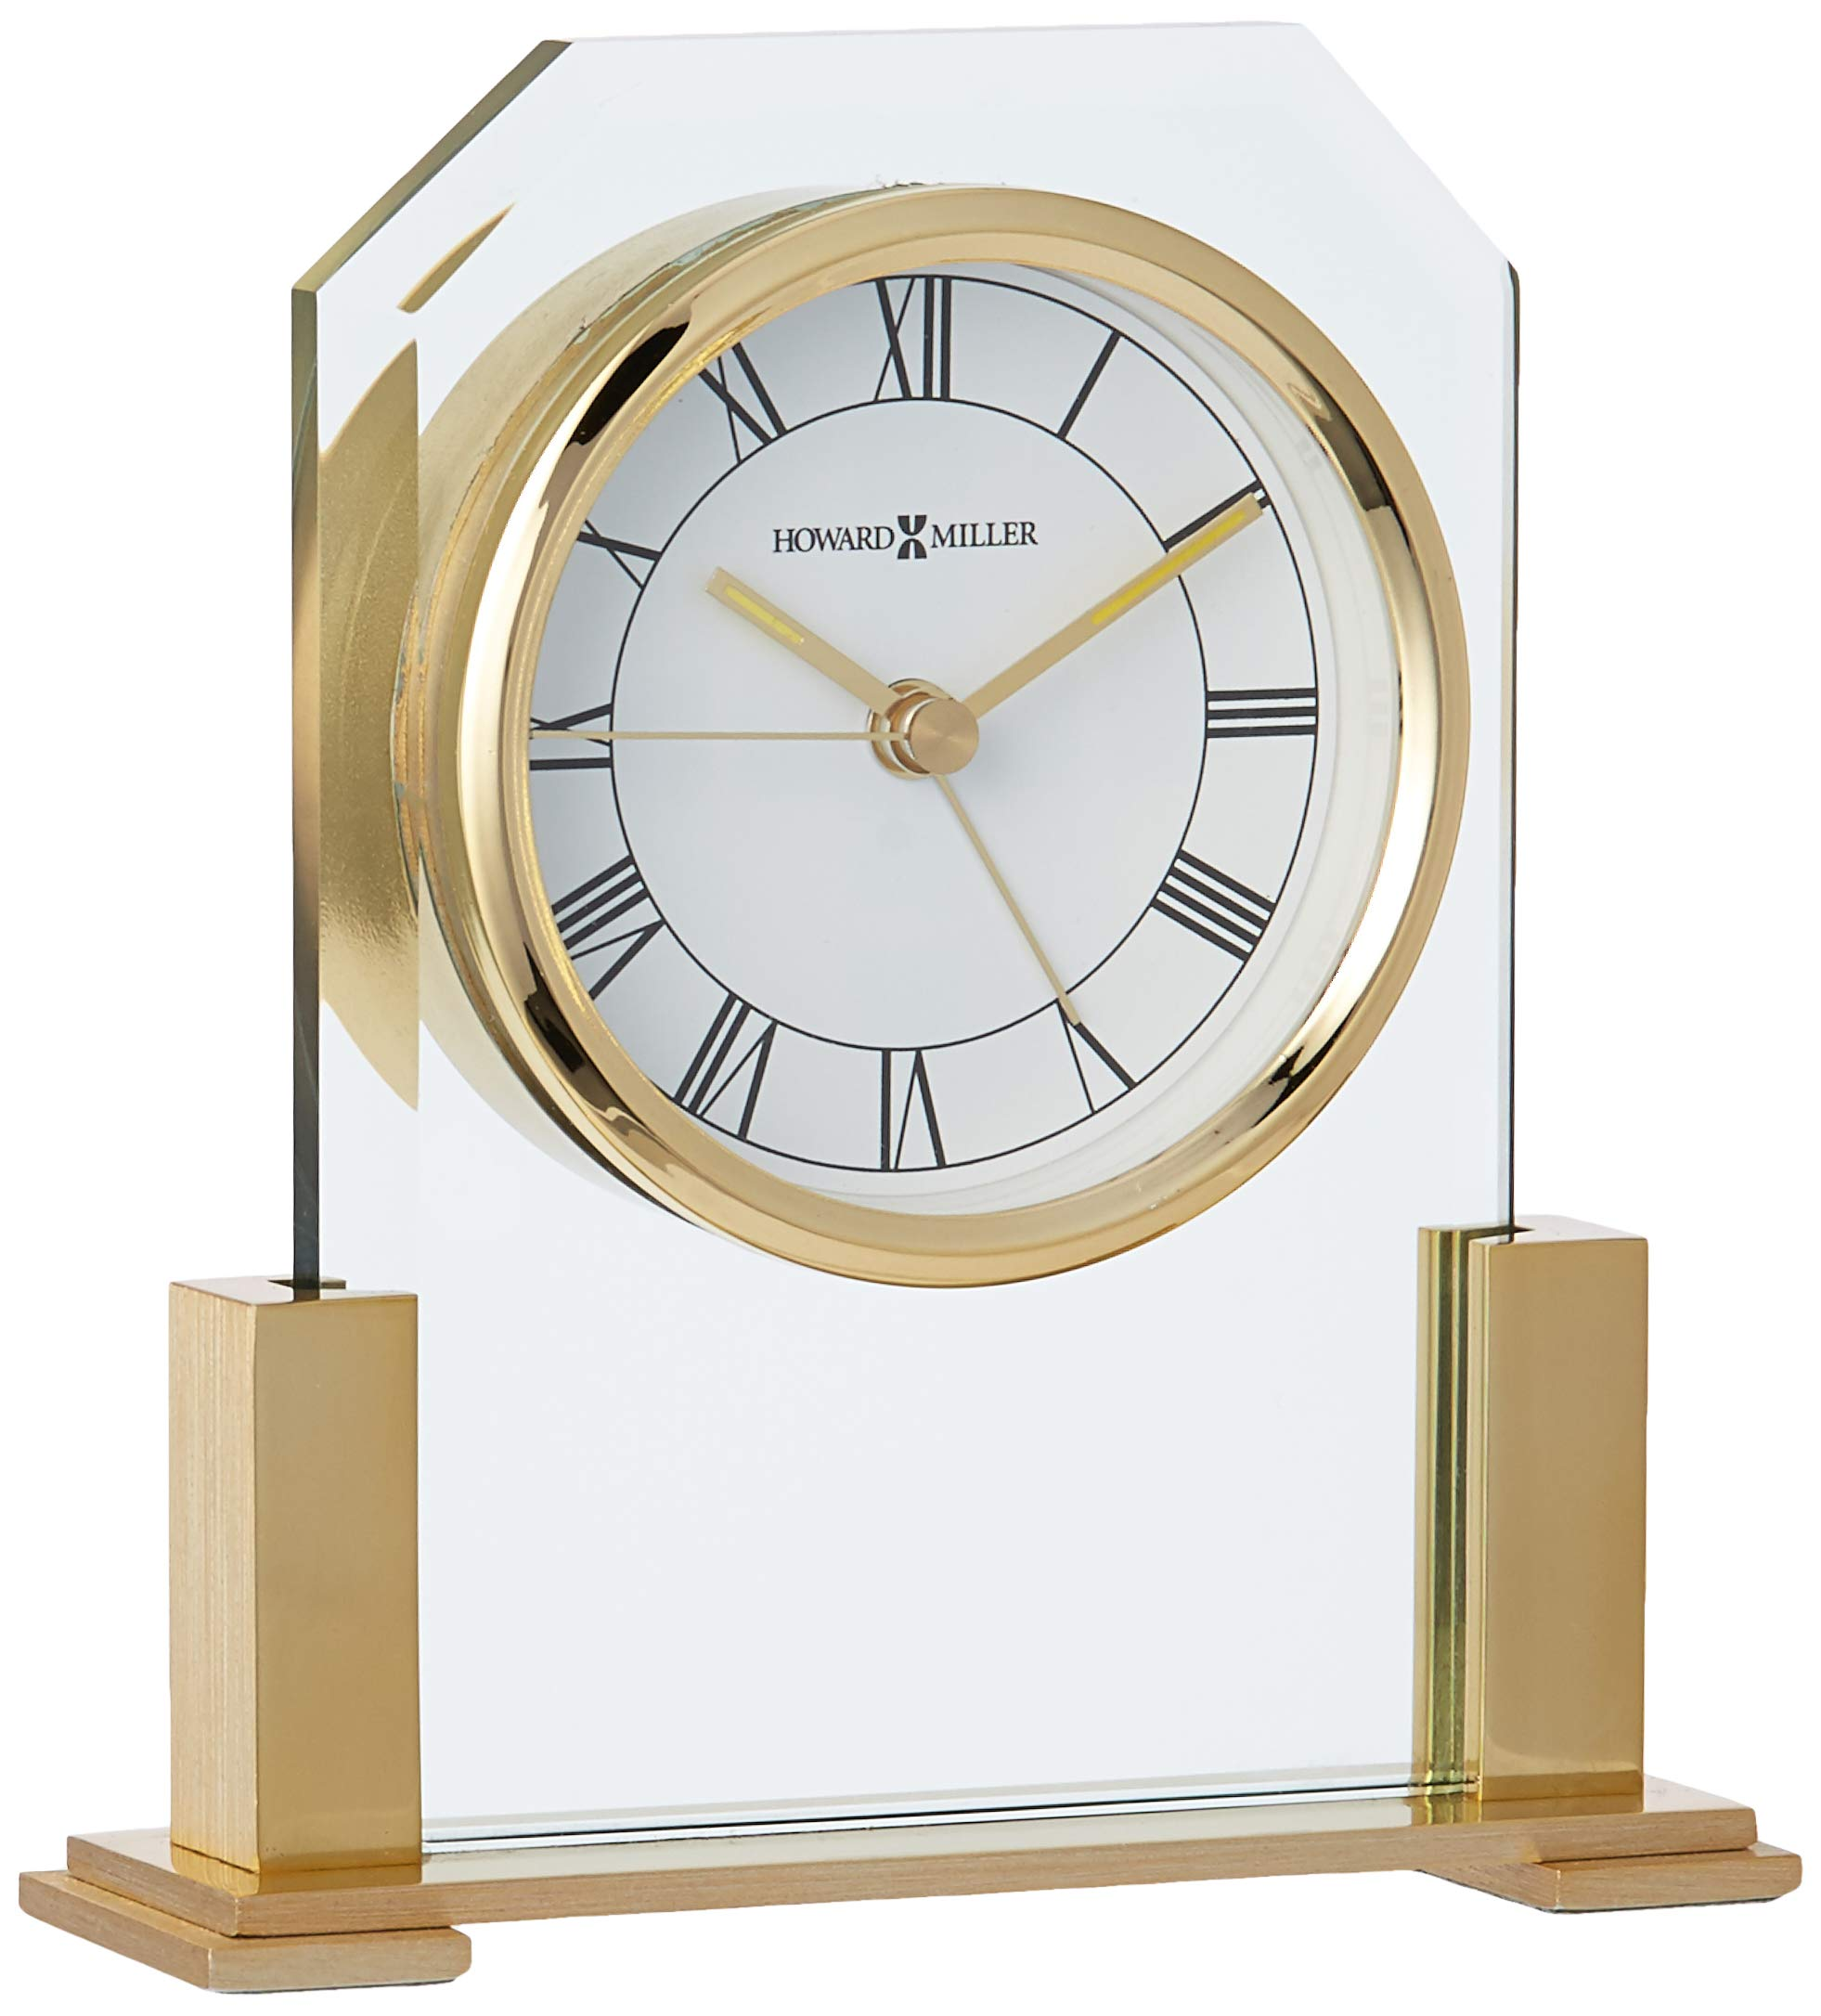 Howard Miller Paramount Table Clock 613-573 – Brass Finished with Quartz Alarm Movement - TABLE CLOCK: The Paramount Clock is finished in polished brass and made with beveled glass to compliment your home decor. The clock's quartz movement makes a soft ticking noise without the use of chimes for a quieter environment. DURABLE: This indoor alarm clock is created to last. It has a sturdy frame to relieve stress in a busy household. Place it in your kitchen, office, bathroom, bedroom, living room, and more. HIGH QUALITY: The enduring design shows traditional black Roman numerals, with IIII instead of IV. Easily tell time with luminous insets on the hour and minute hands, and glass crystal to stand out over the white dial. - clocks, bedroom-decor, bedroom - 71LWEfUu61L -